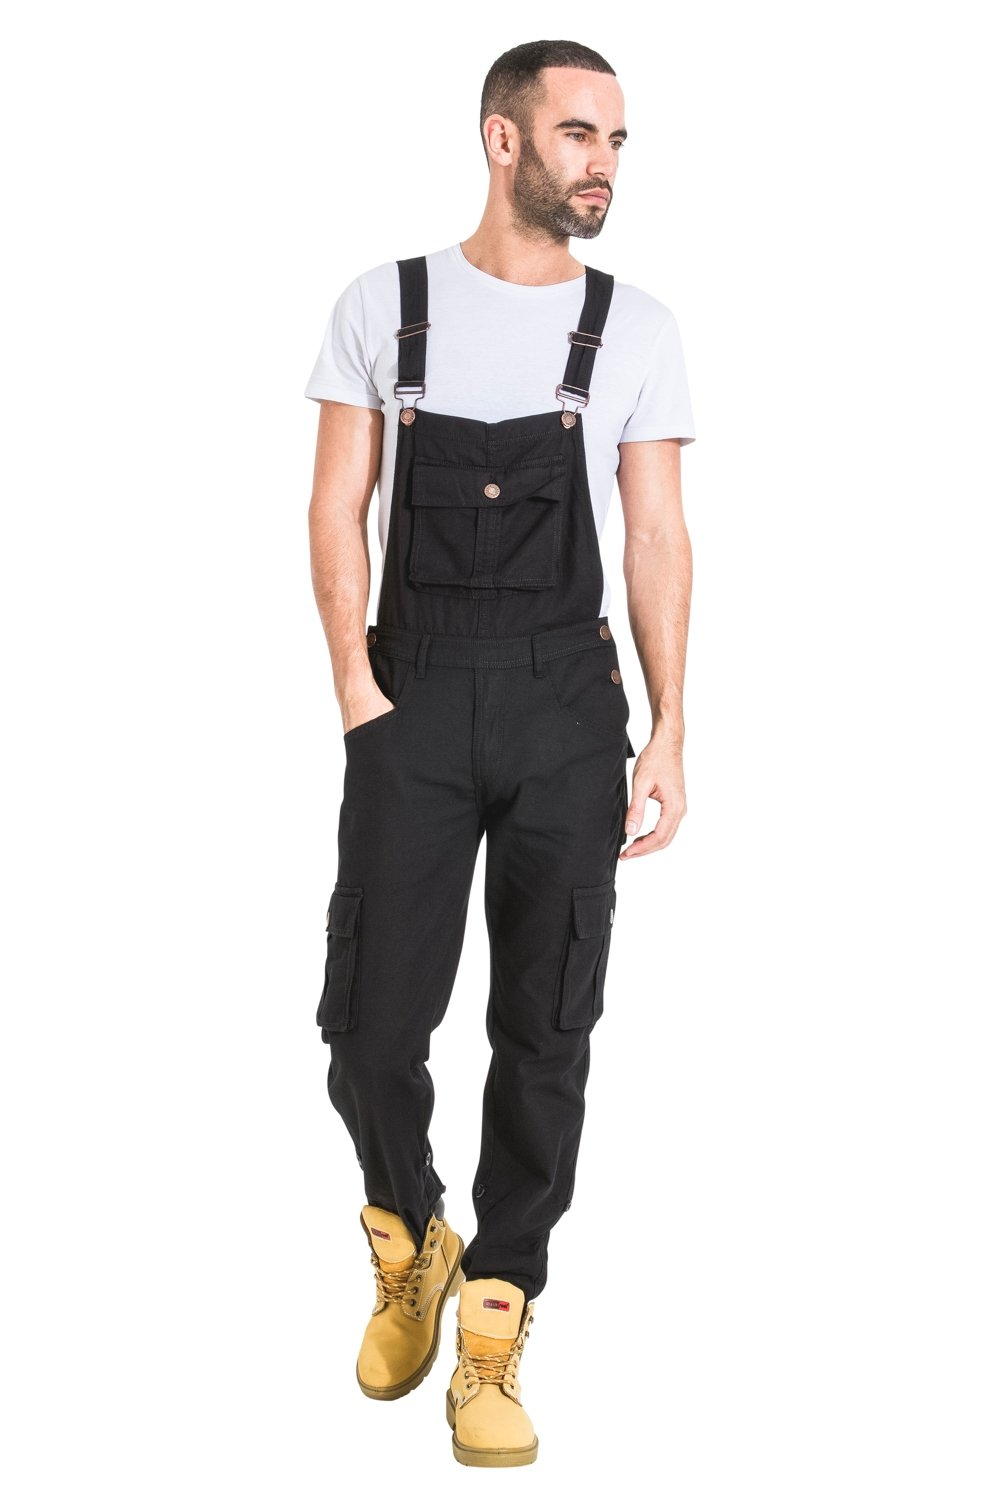 USKEES Bill Mens Bib Overalls - Black Roll-up leg mens denim overalls